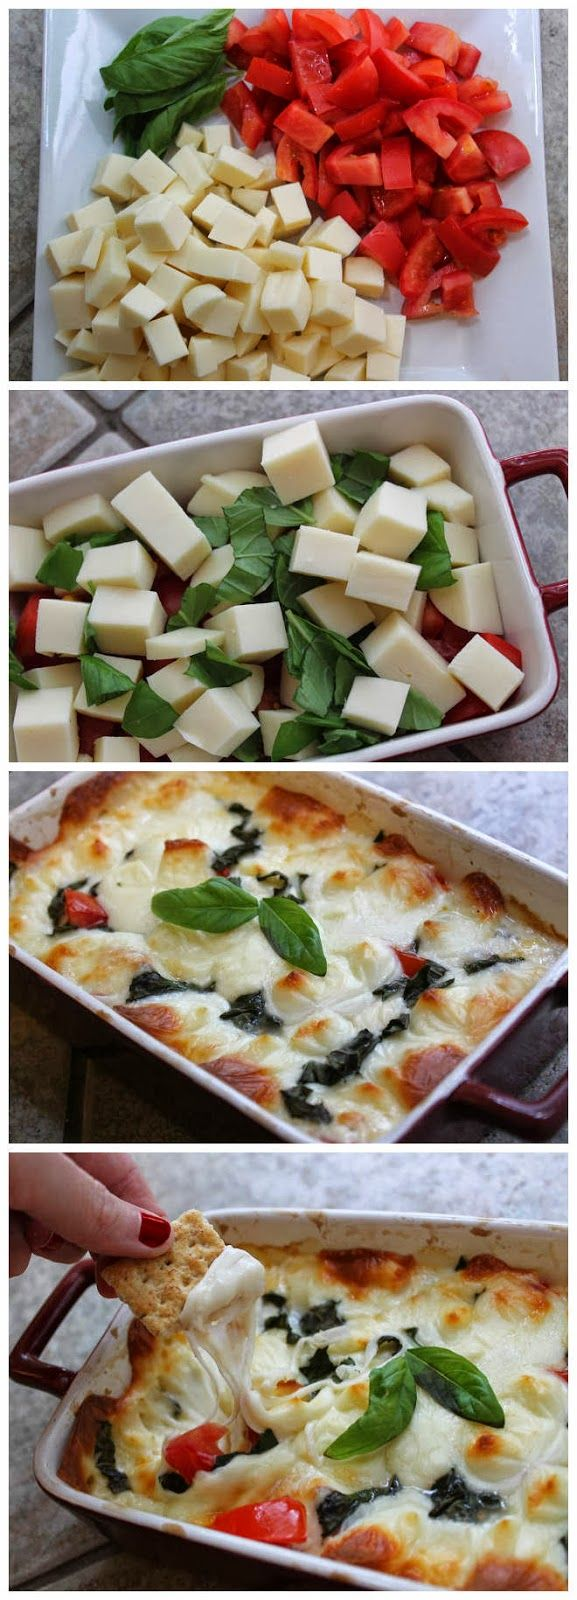 Hot Caprese Dip:This looks delicious and I've never heard of a dip like it! Absolutely trying this for a party this weekend. Looks unbelievable.Yum!